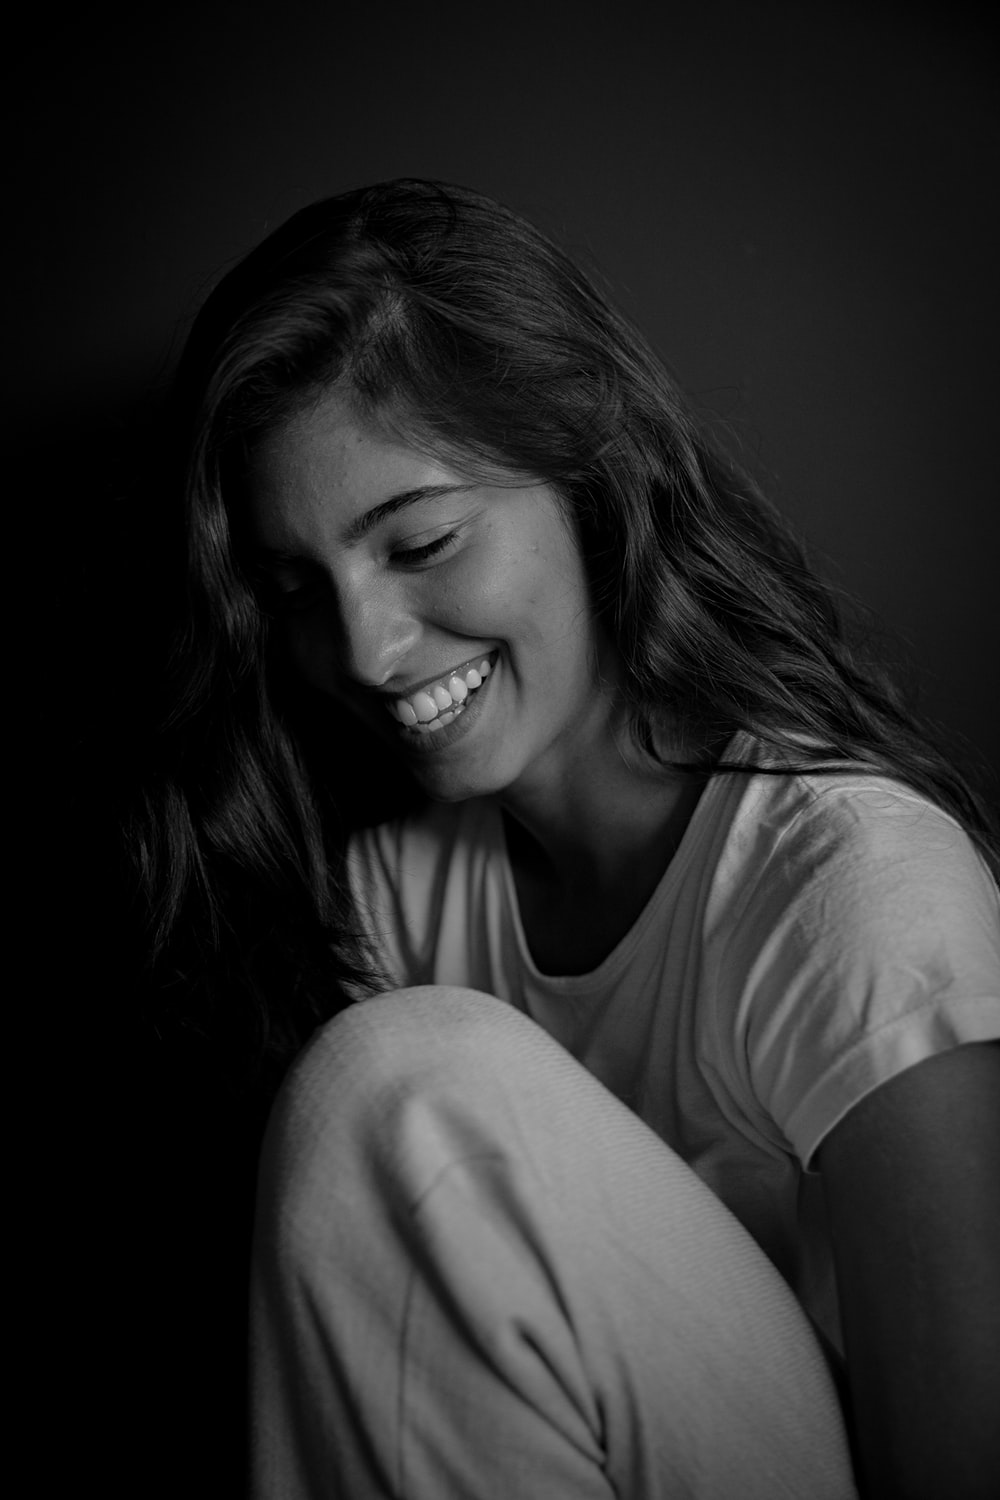 woman in white t-shirt smiling